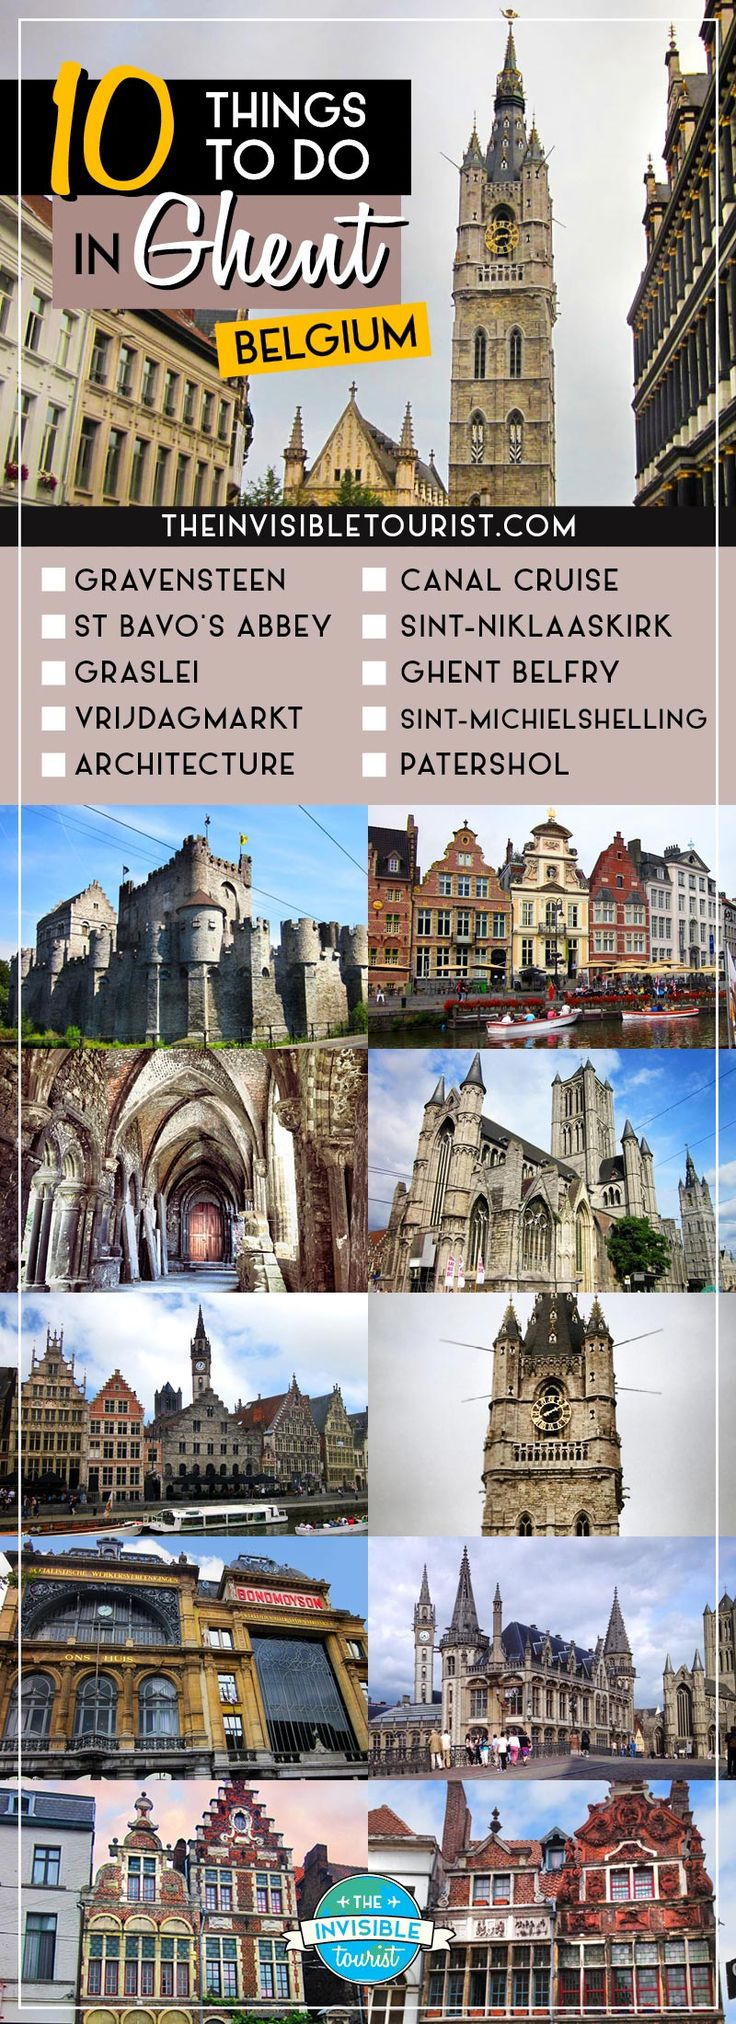 10 Things to Do in Ghent, Belgium • Checklist | The Invisible Tourist